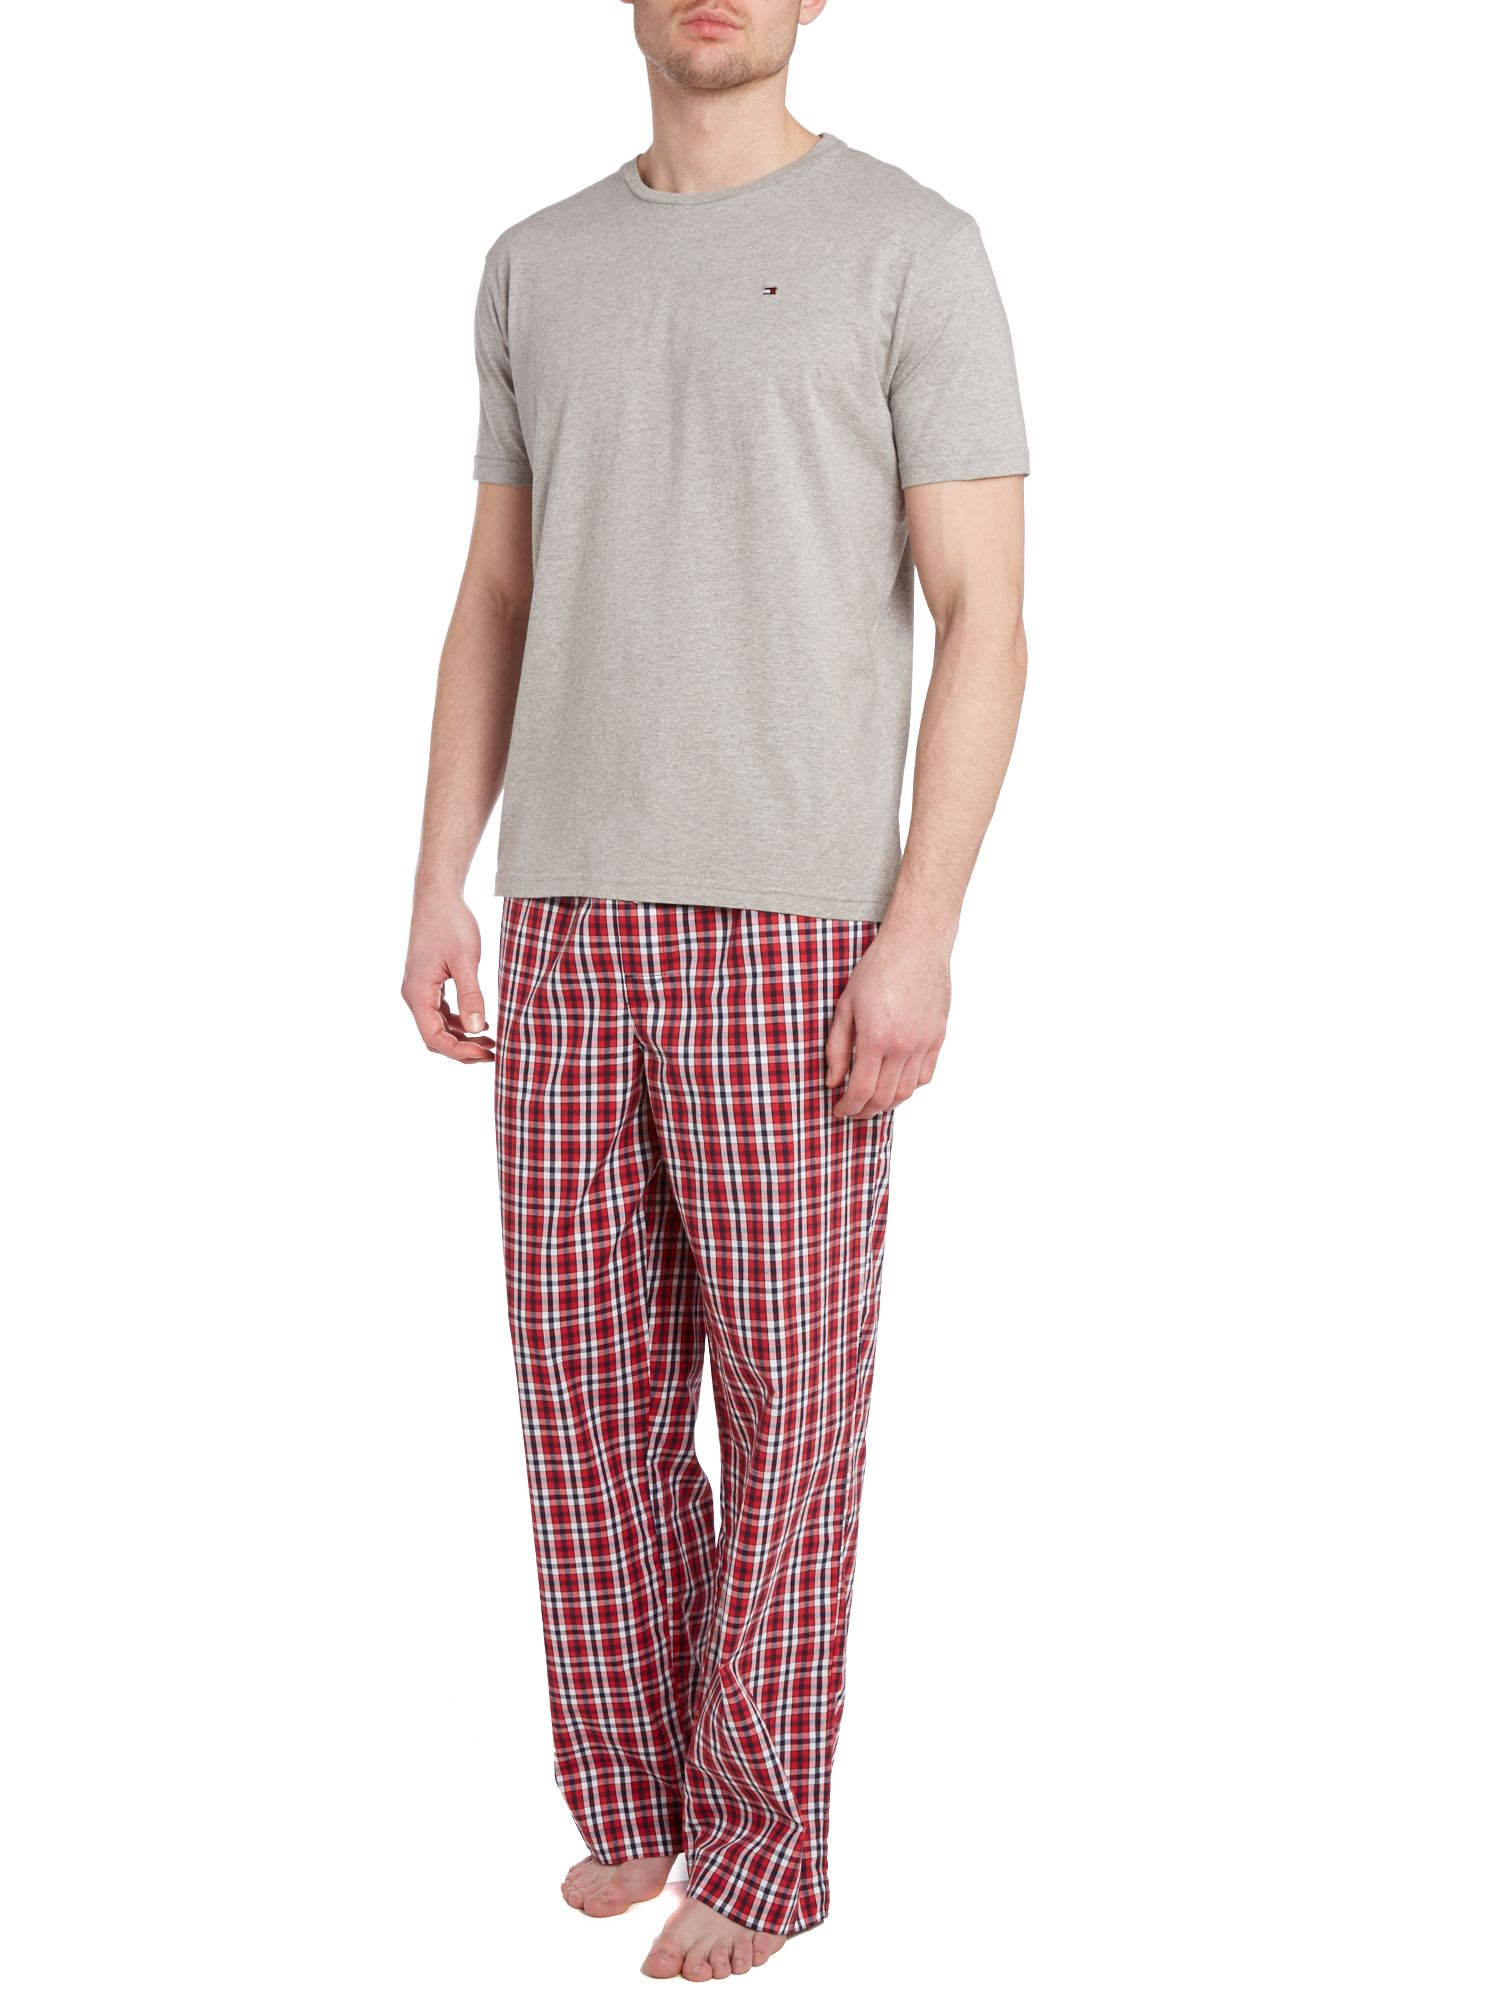 Woven check pant and top pj set